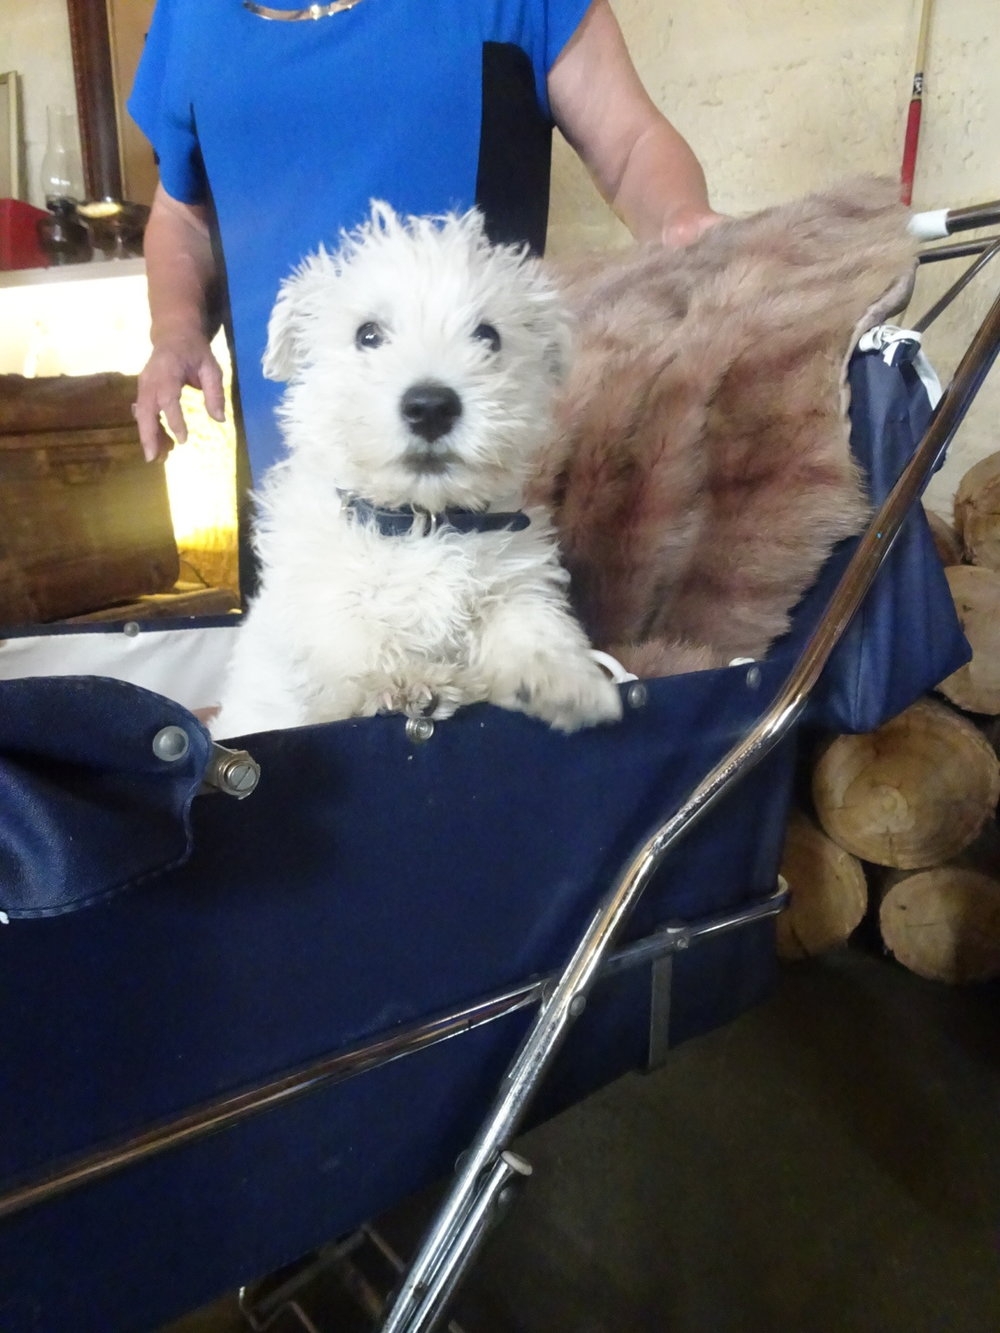 Get in touch with us. Bonus points if you're as cute as this little distillery canine cutie pie.